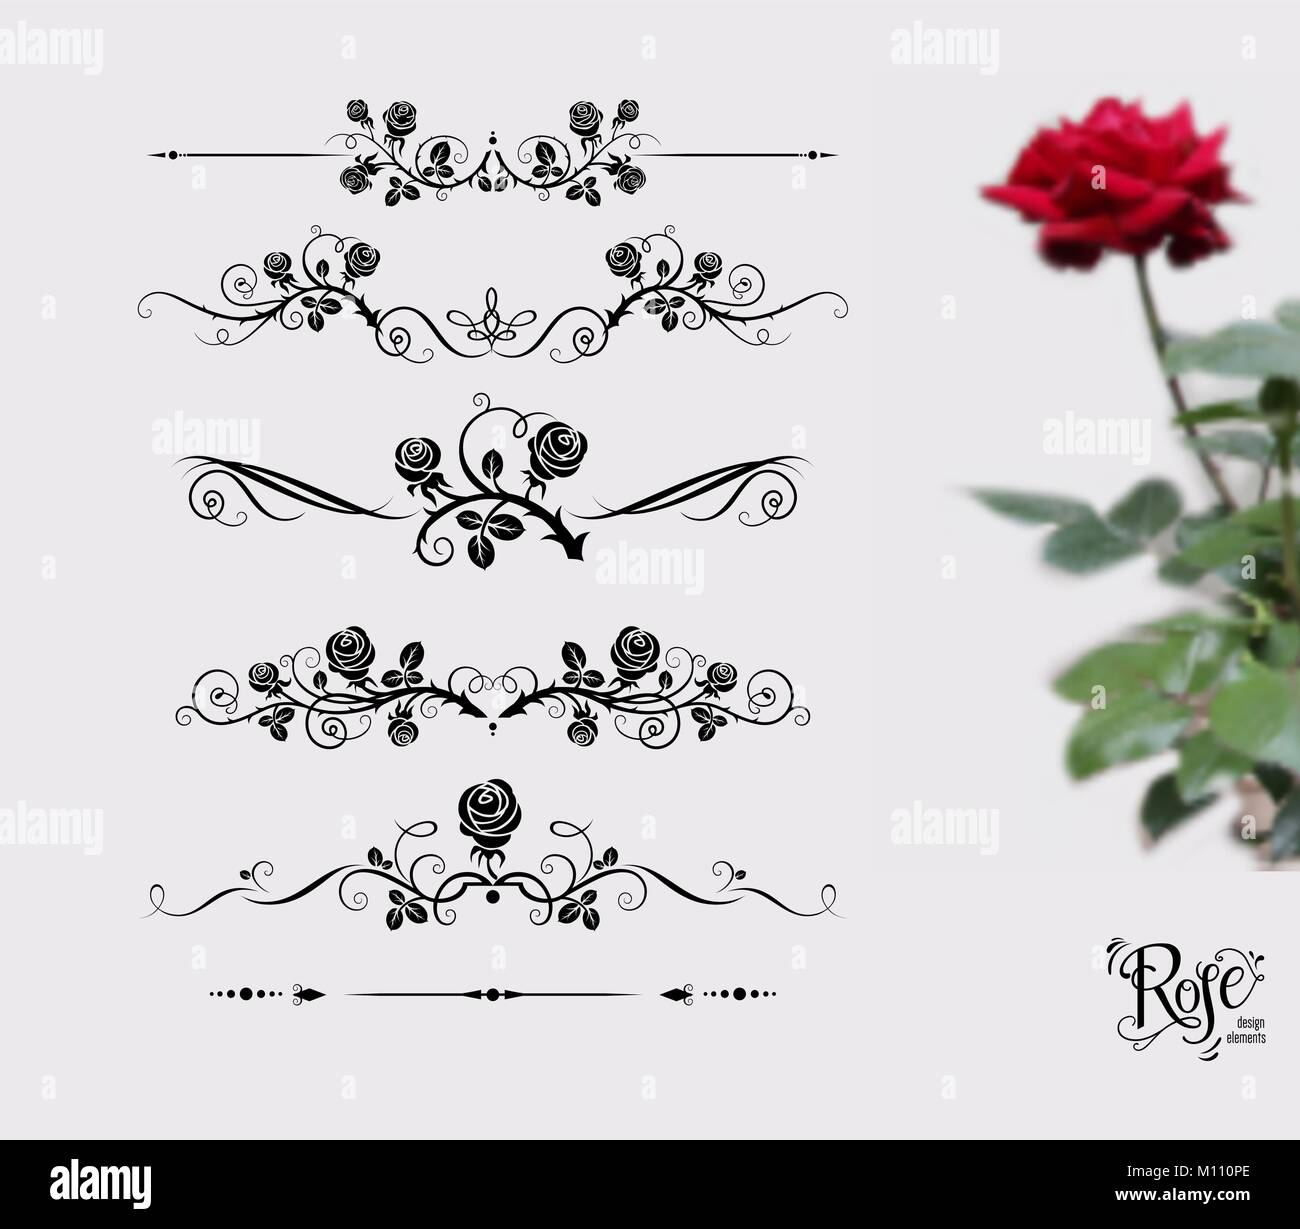 The Rose And Thorn Stock Vector Images Alamy Flower Line Diagram Simple Drawing Of Bud Tattoo Black Set